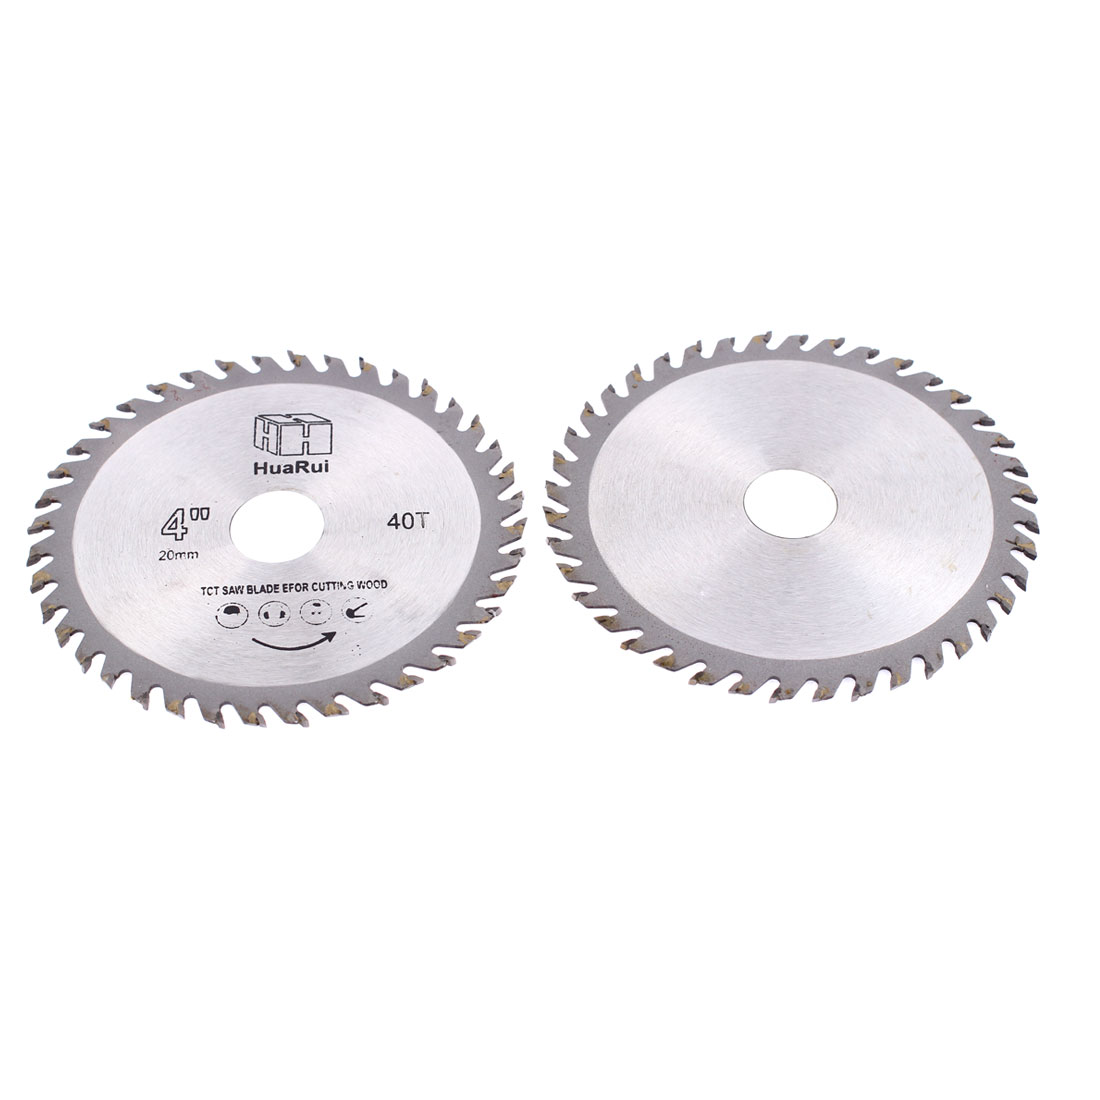 2 Pcs 110mmx20mmx1mm 40 Teeth Circular Cutting Saw Cutter Hand Tool